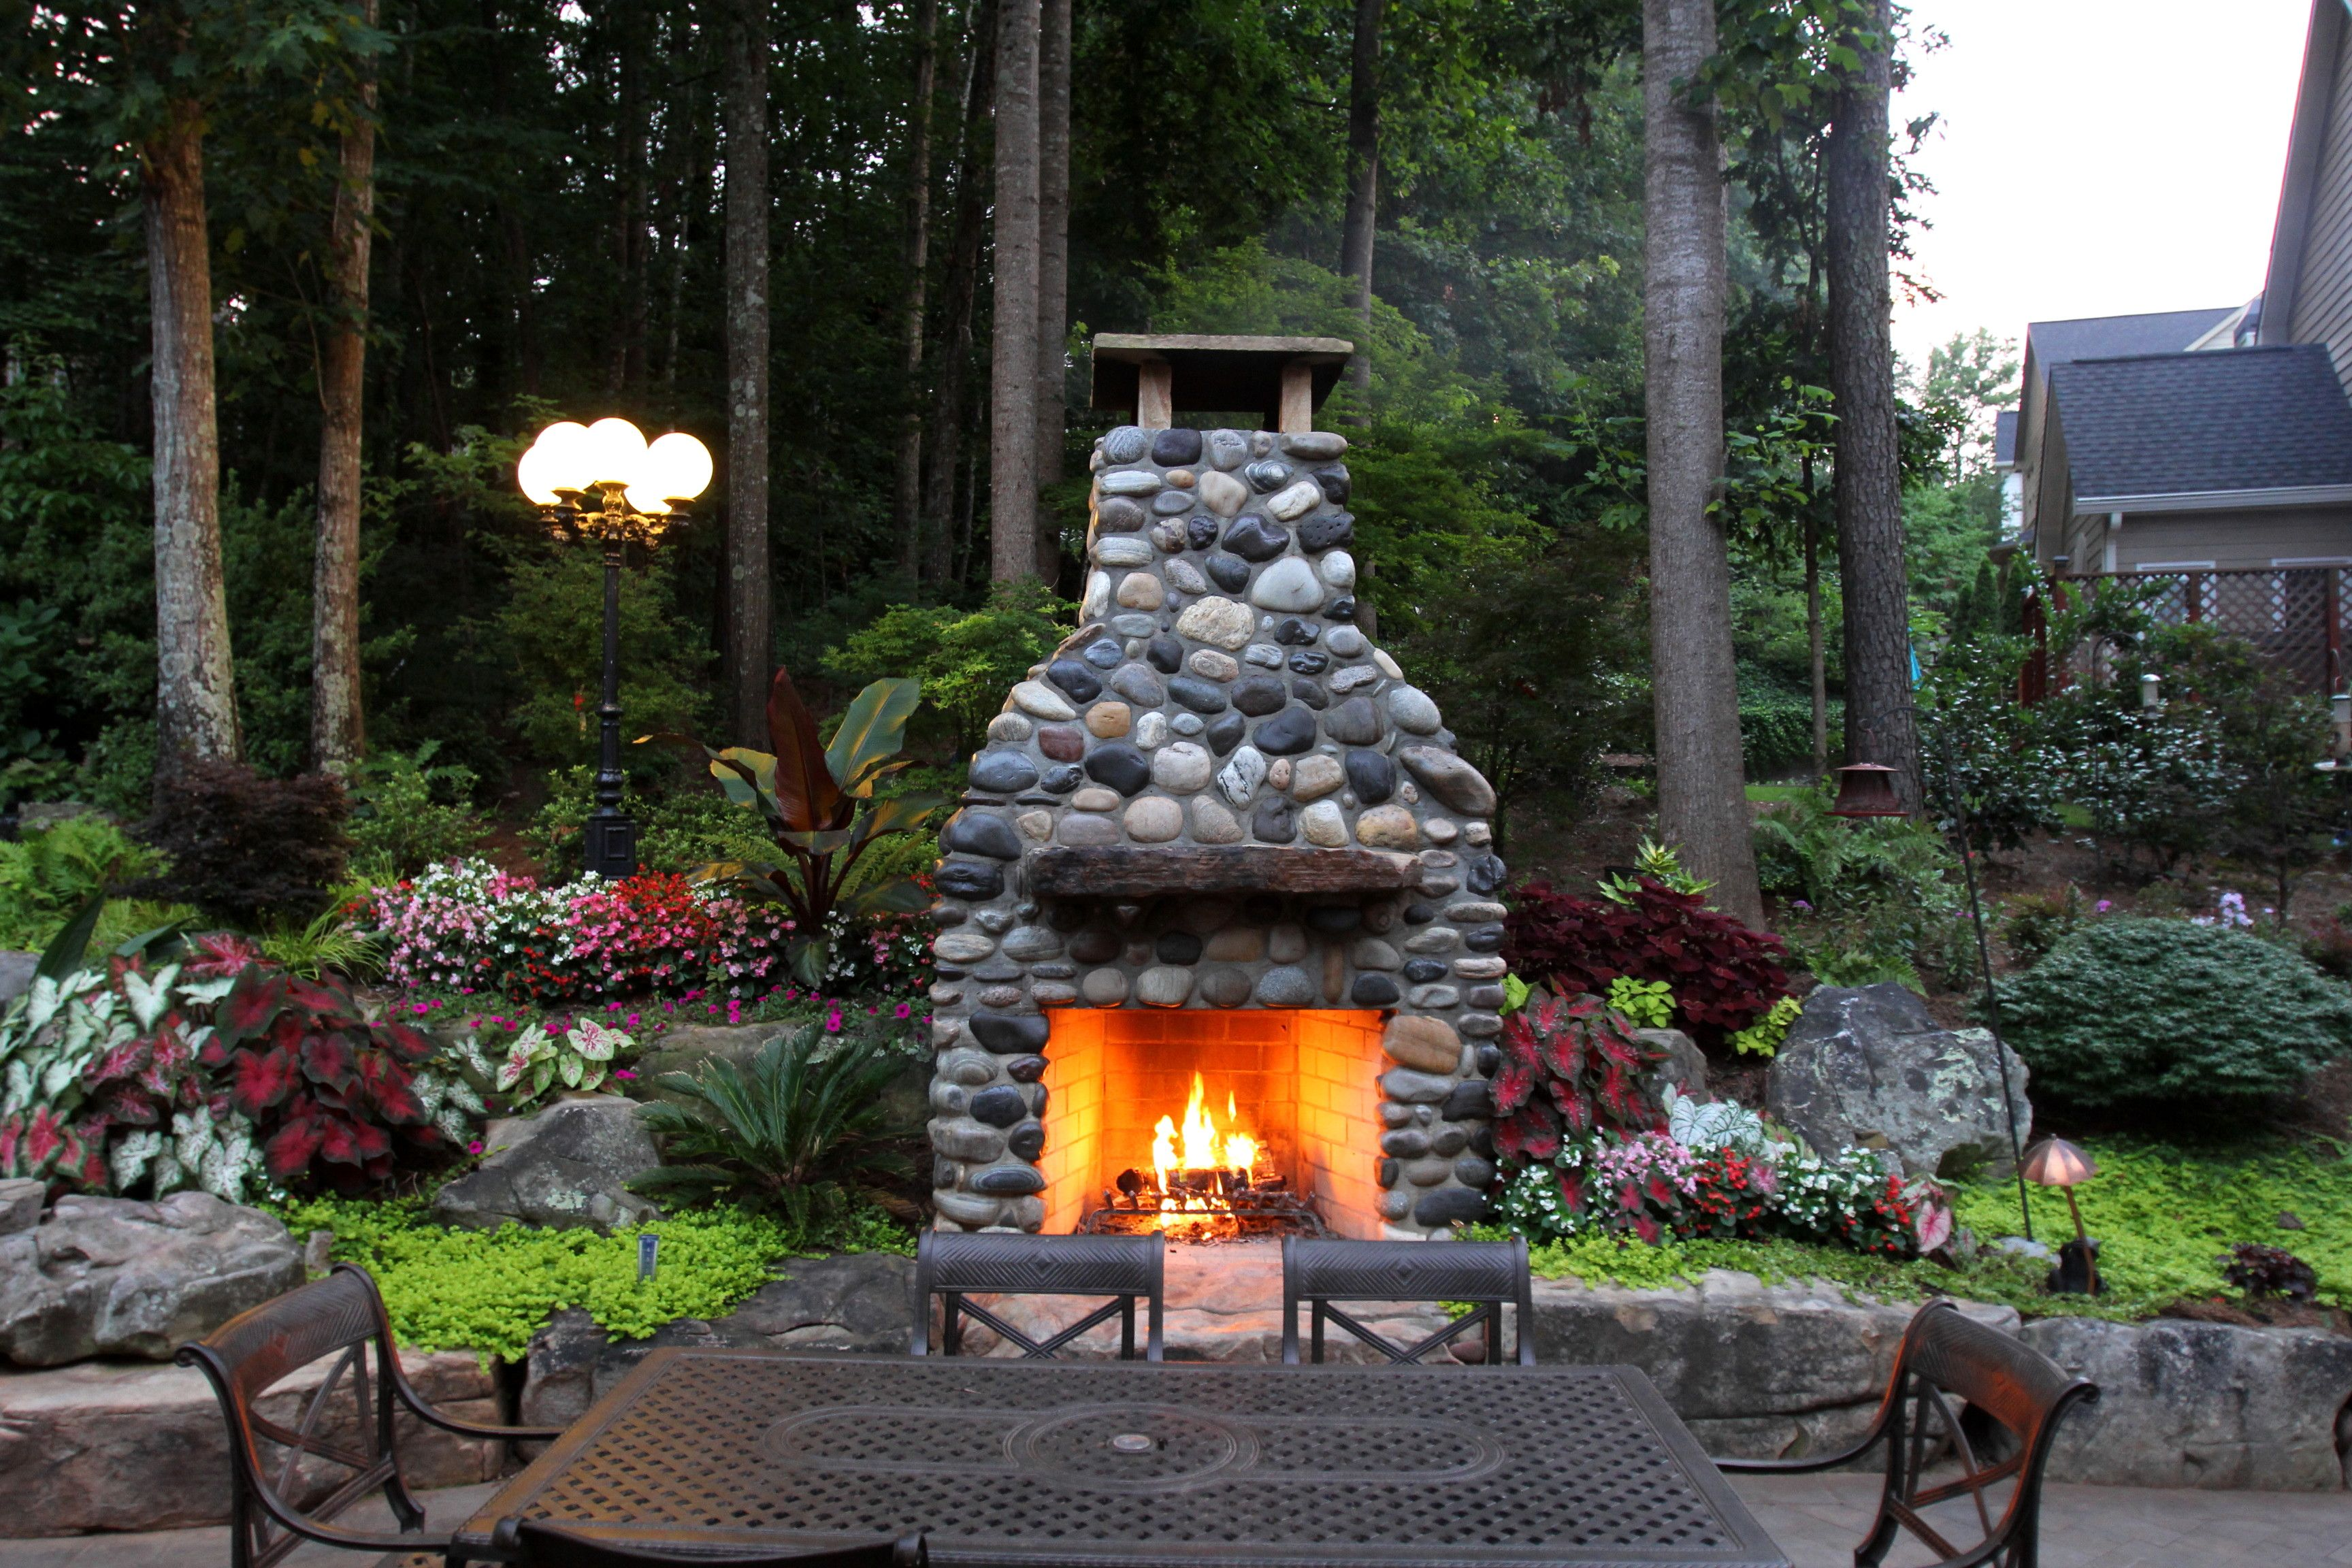 Superior Outdoor Fireplace Made With Montana River Rock.